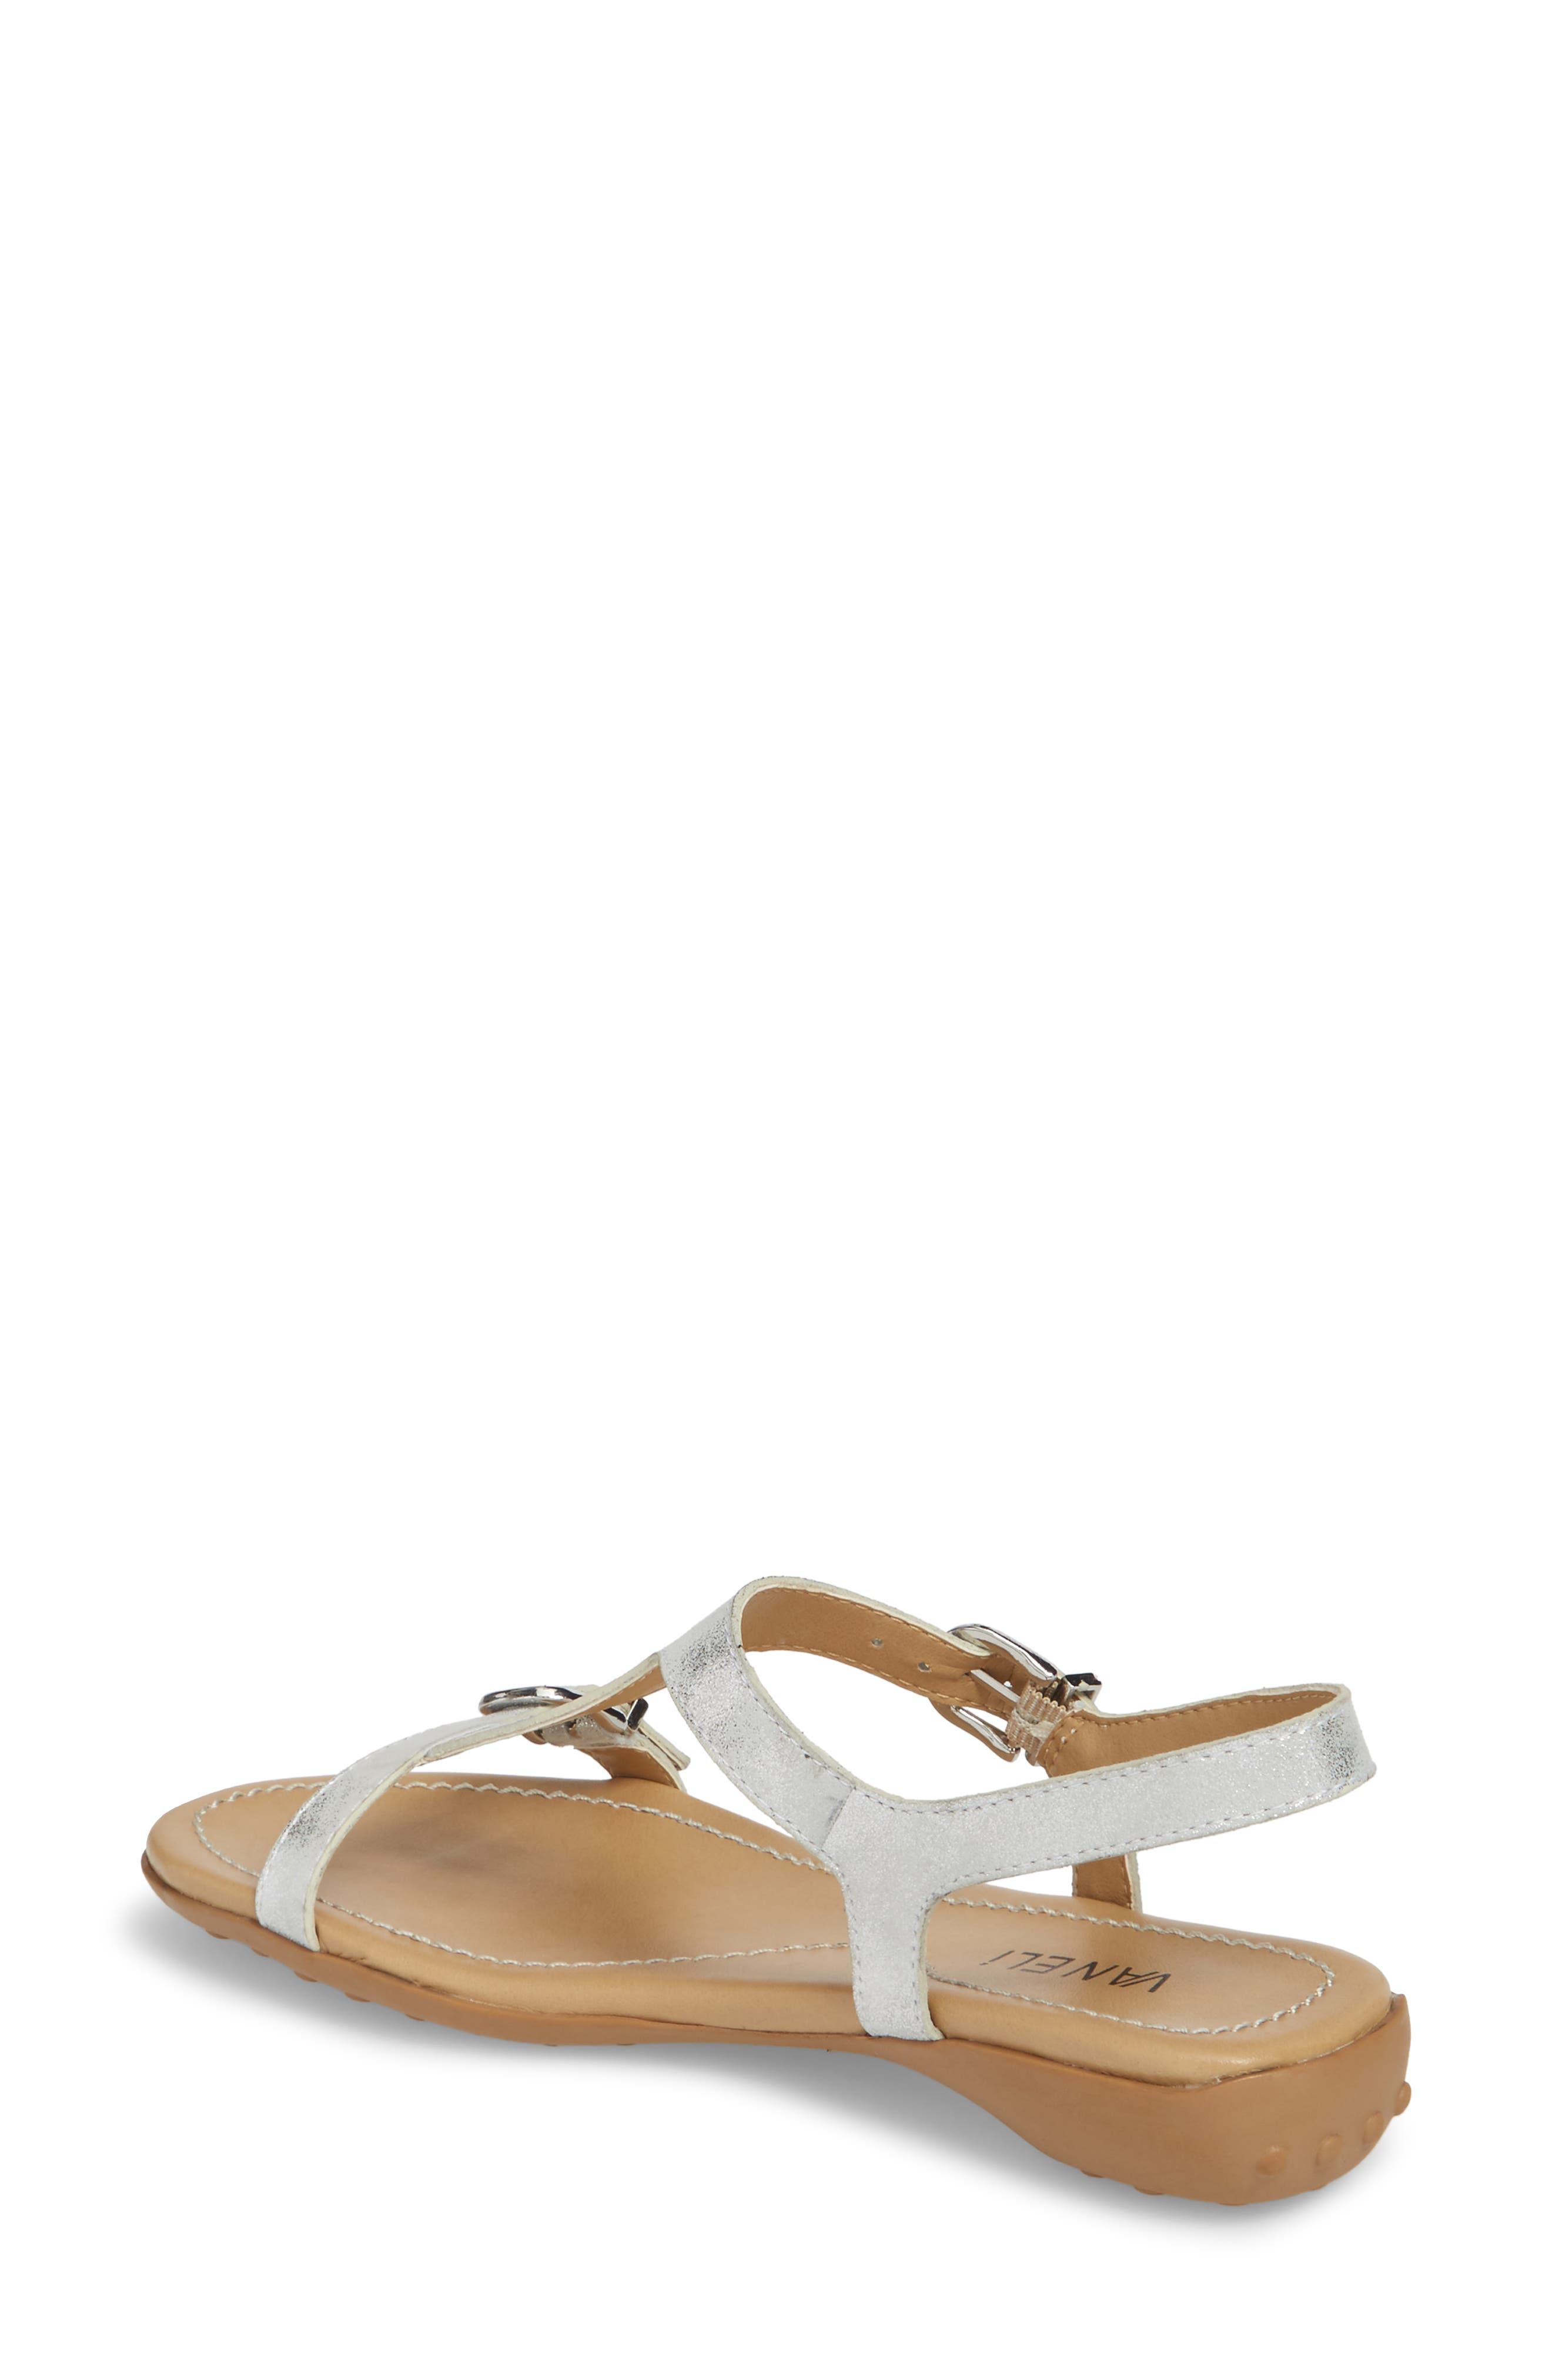 Taletha T-Strap Sandal,                             Alternate thumbnail 2, color,                             Silver Printed Suede